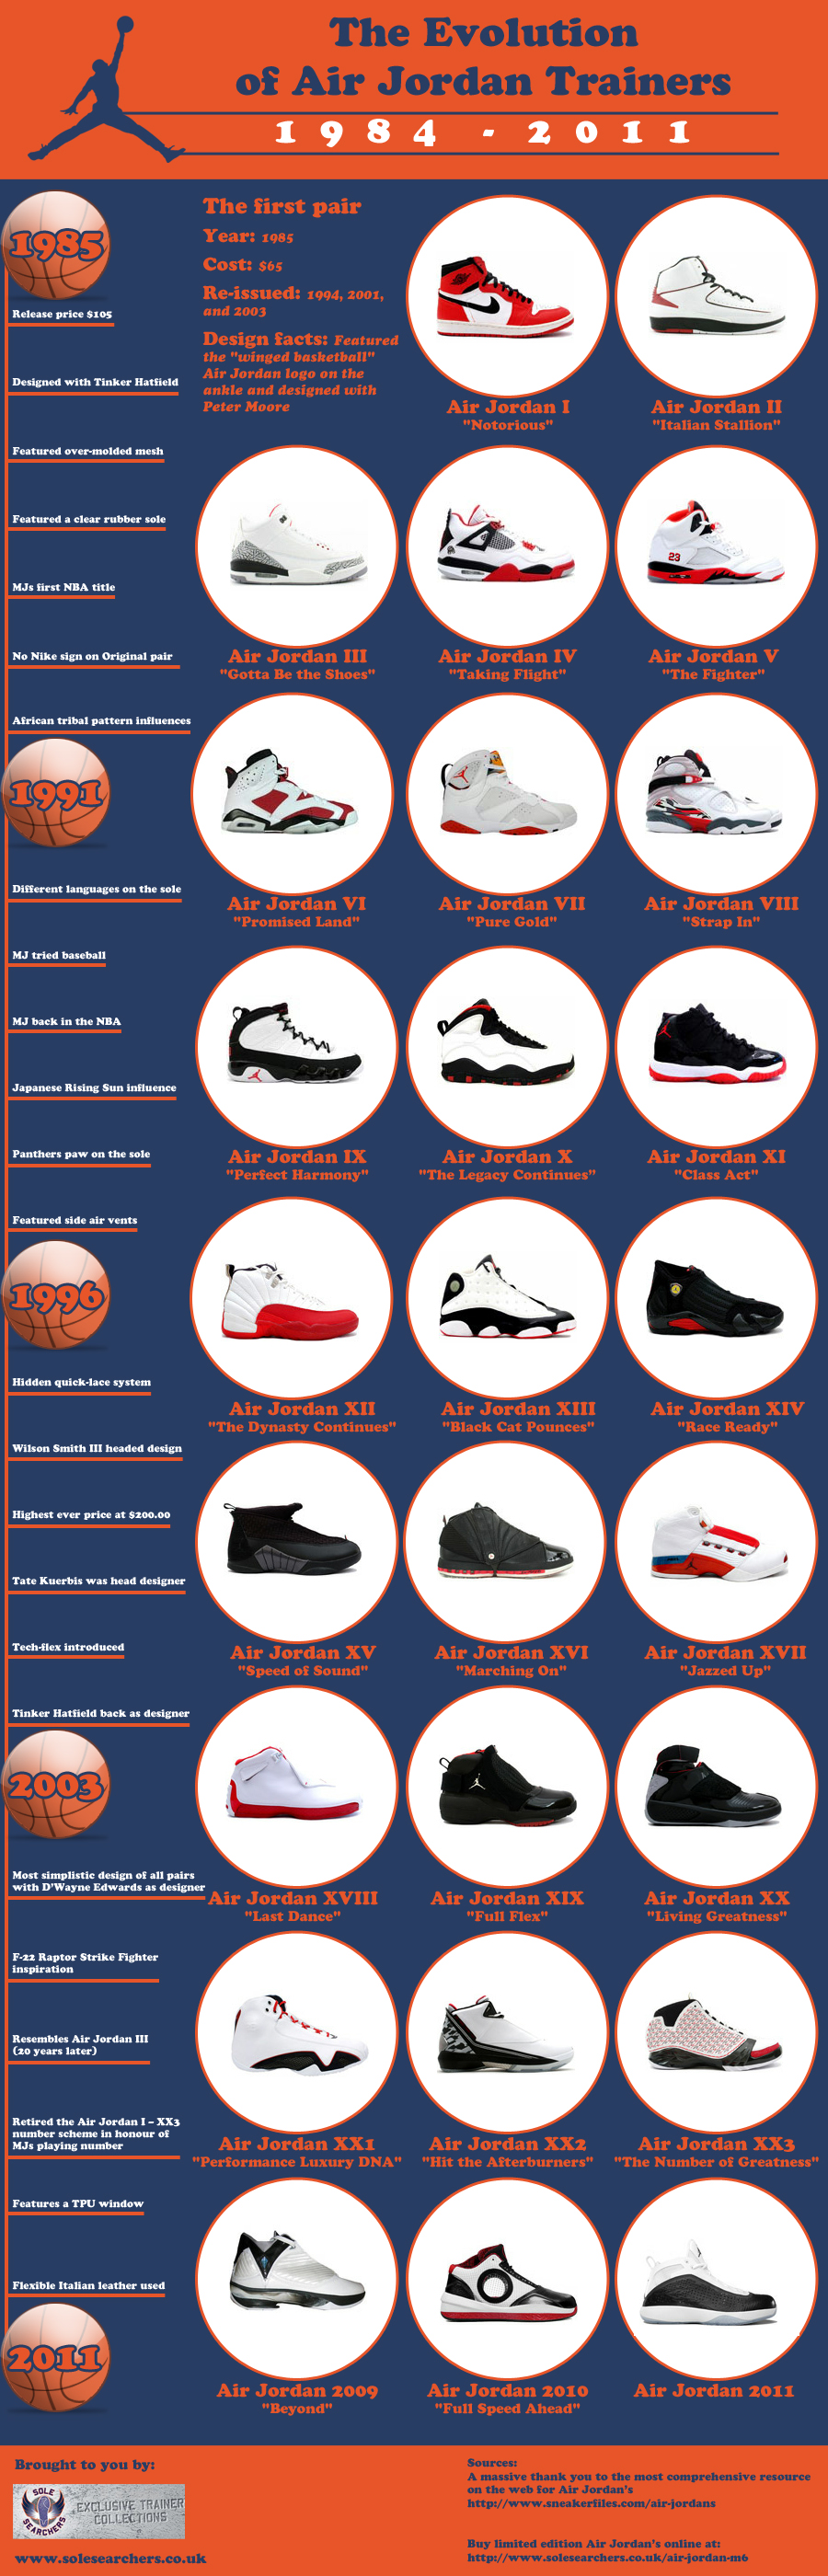 the-evolution-of-air-jordan-trainers_50aa4357814e8